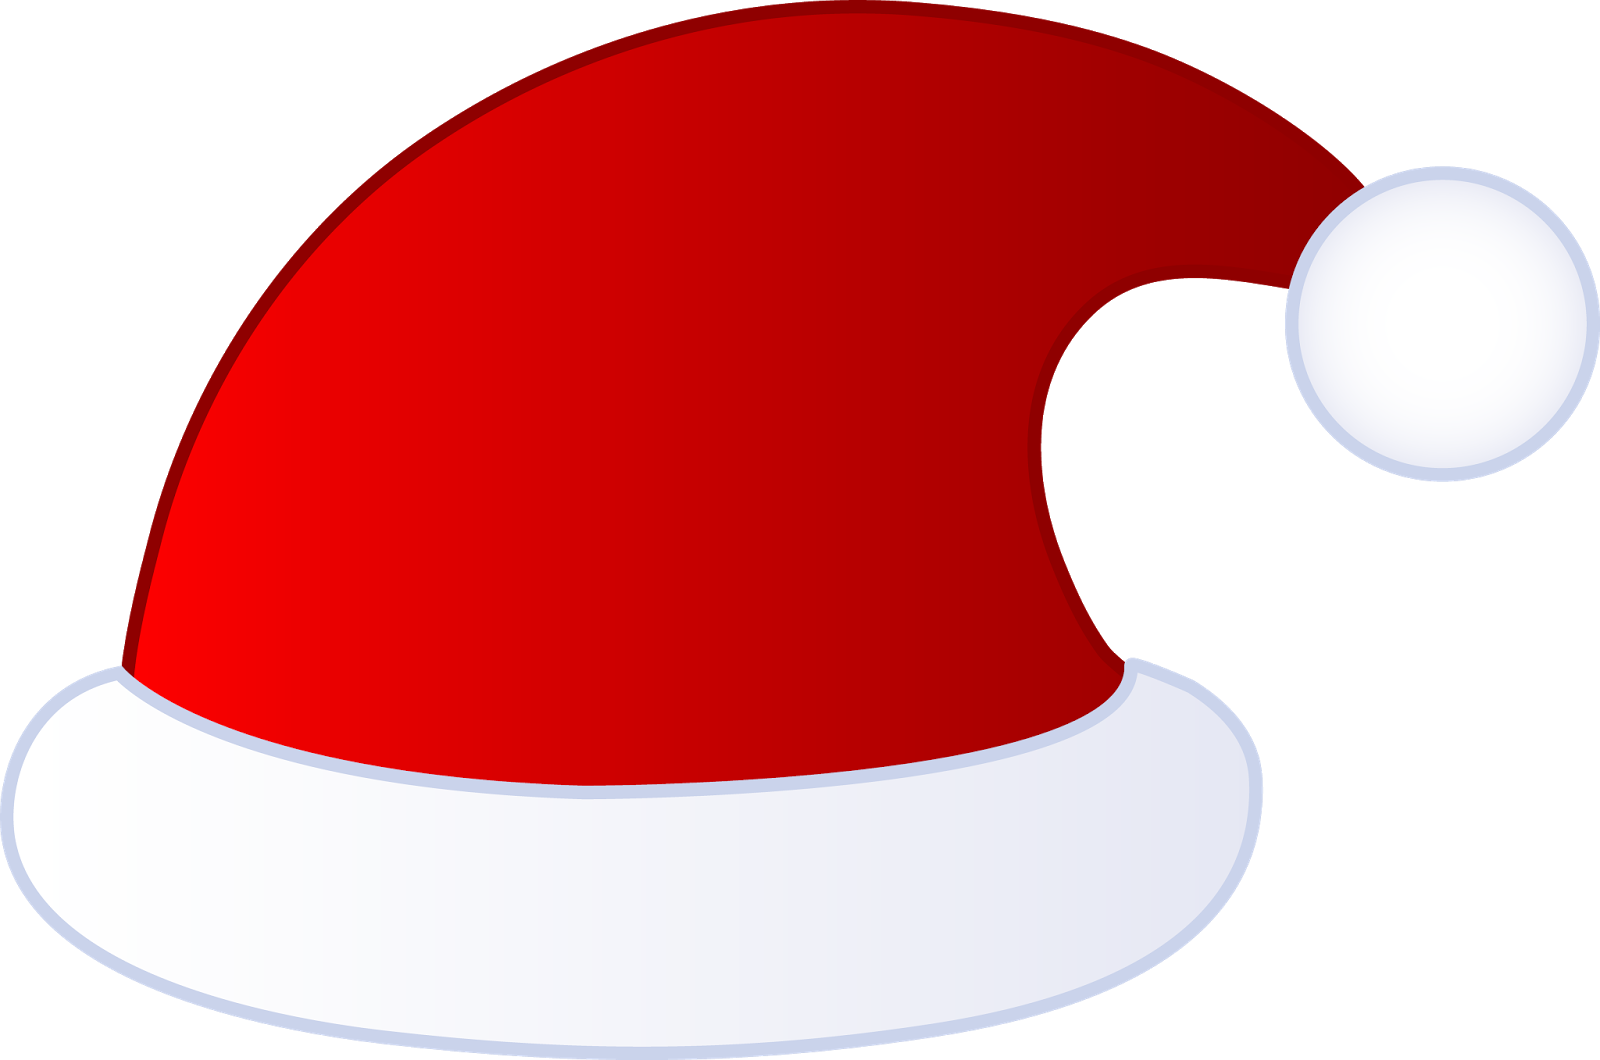 ... animated santa hat 850 x 631 31 kb jpeg santa hat coloring page 472